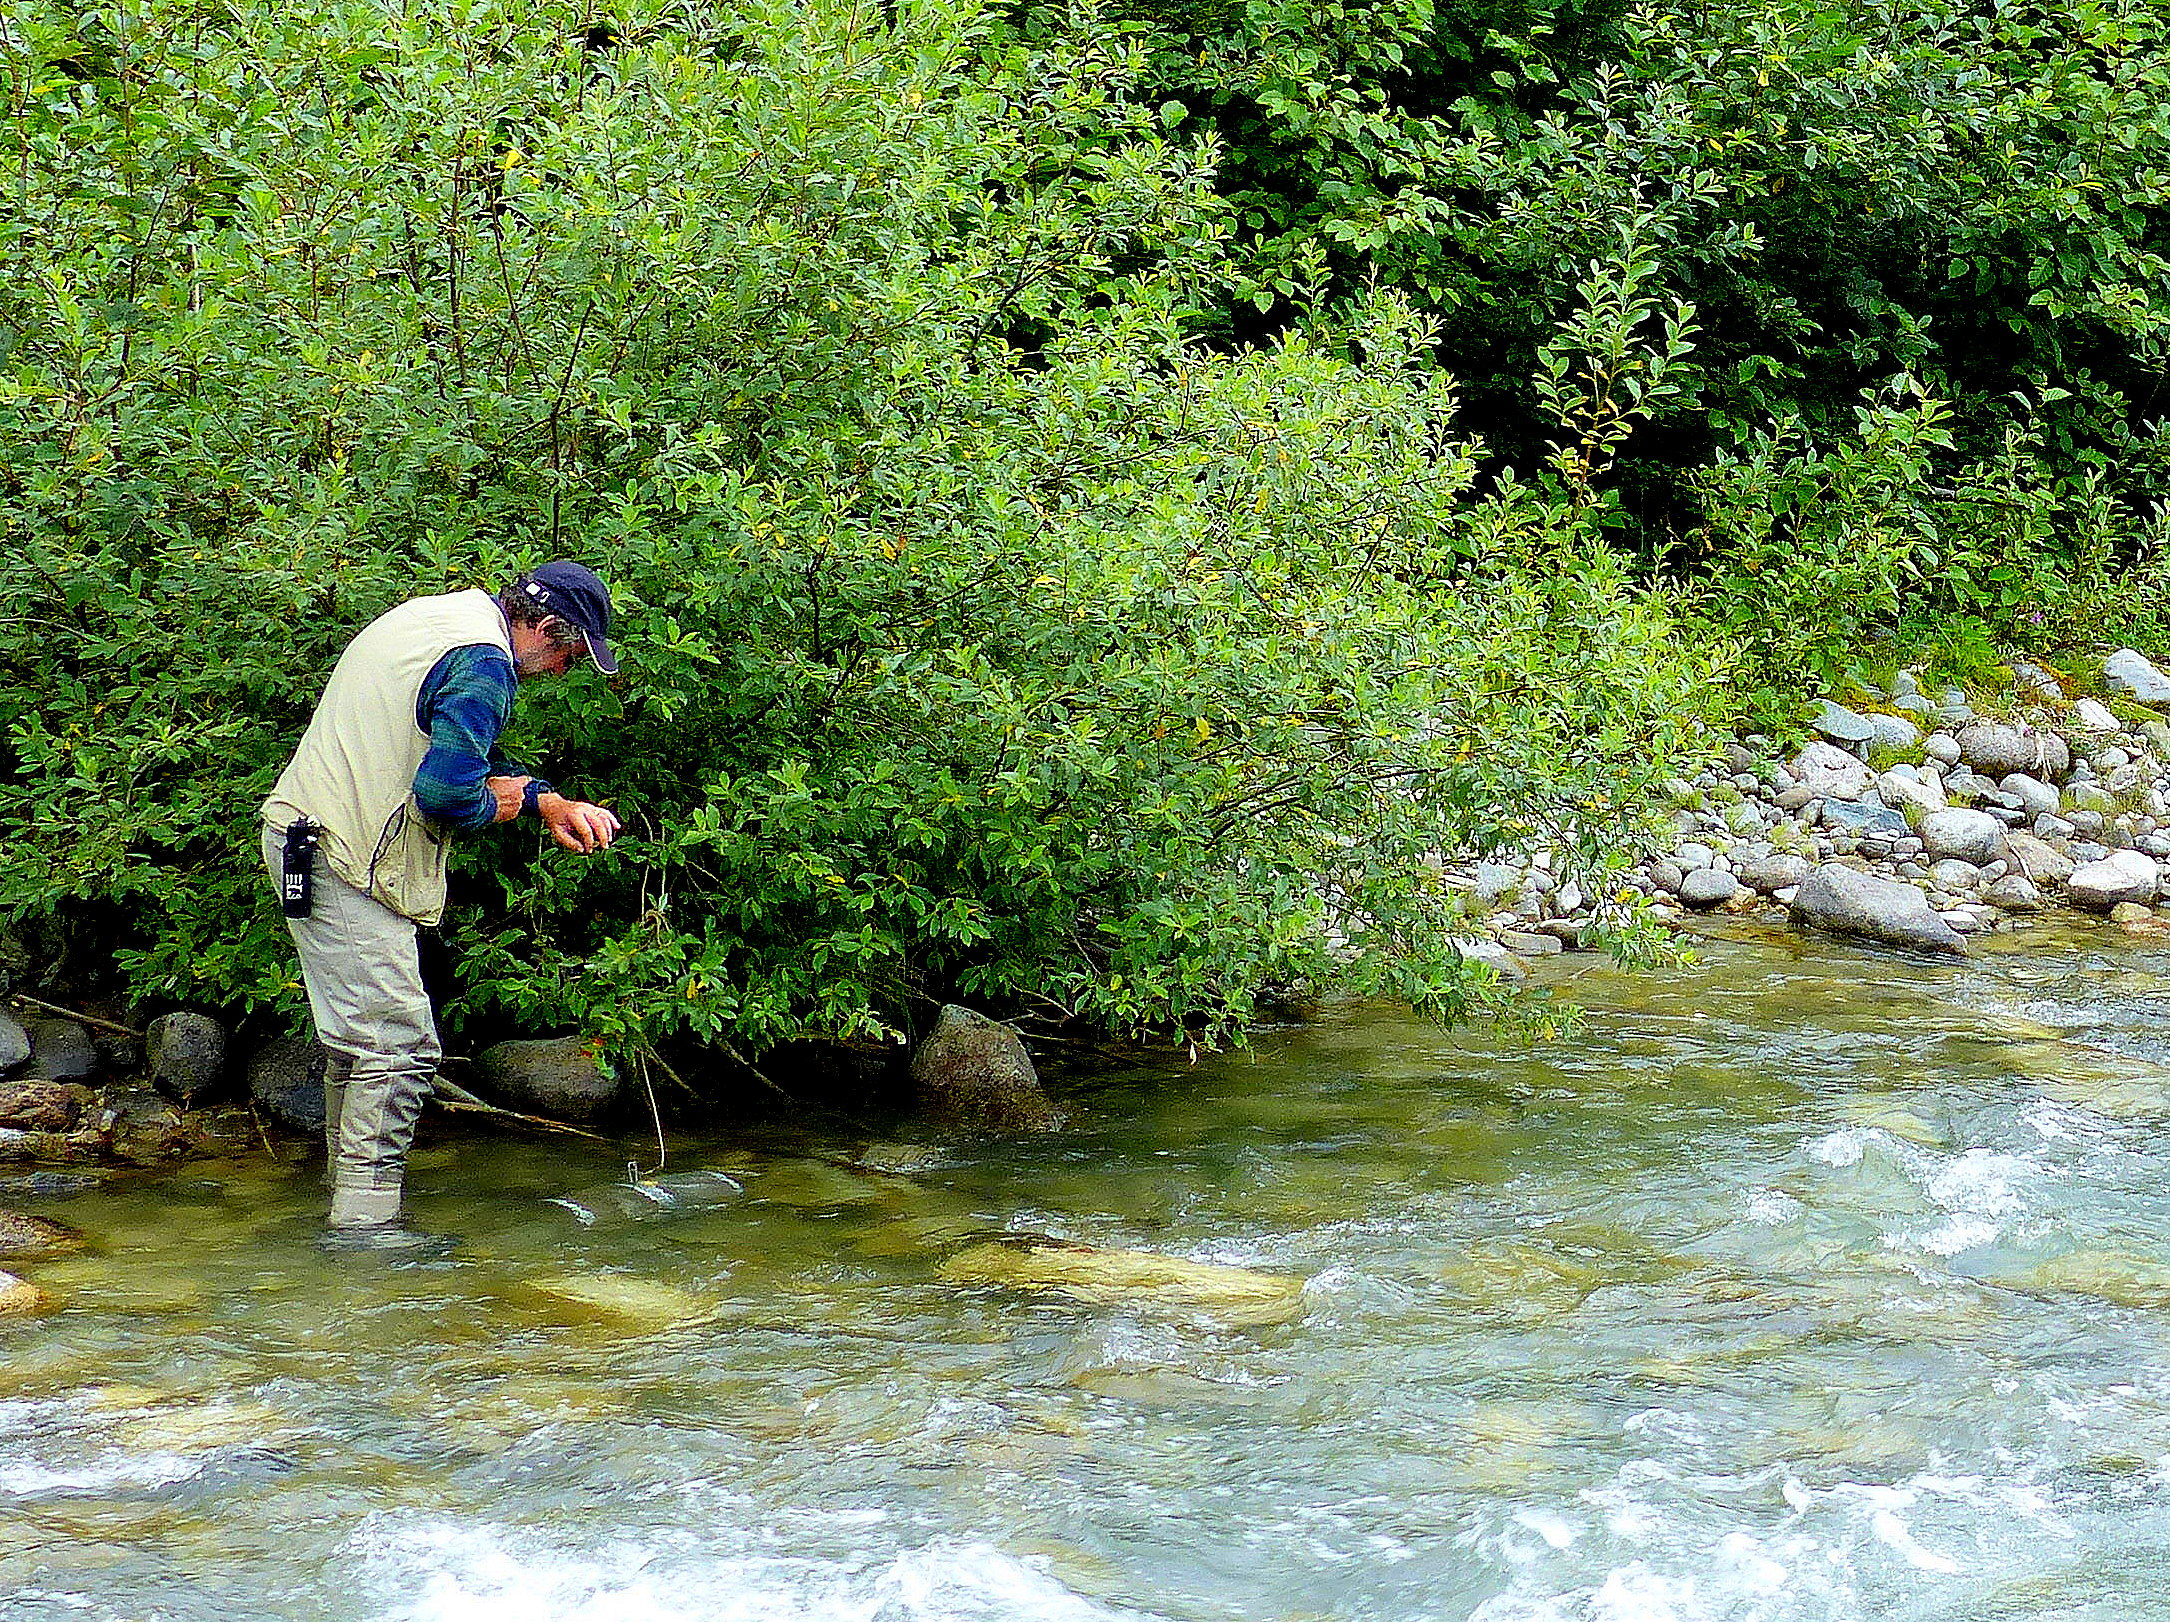 Dr. Sandy Milner, sets a trap to catch young salmon for his research on streams in Glacier Bay National Park.